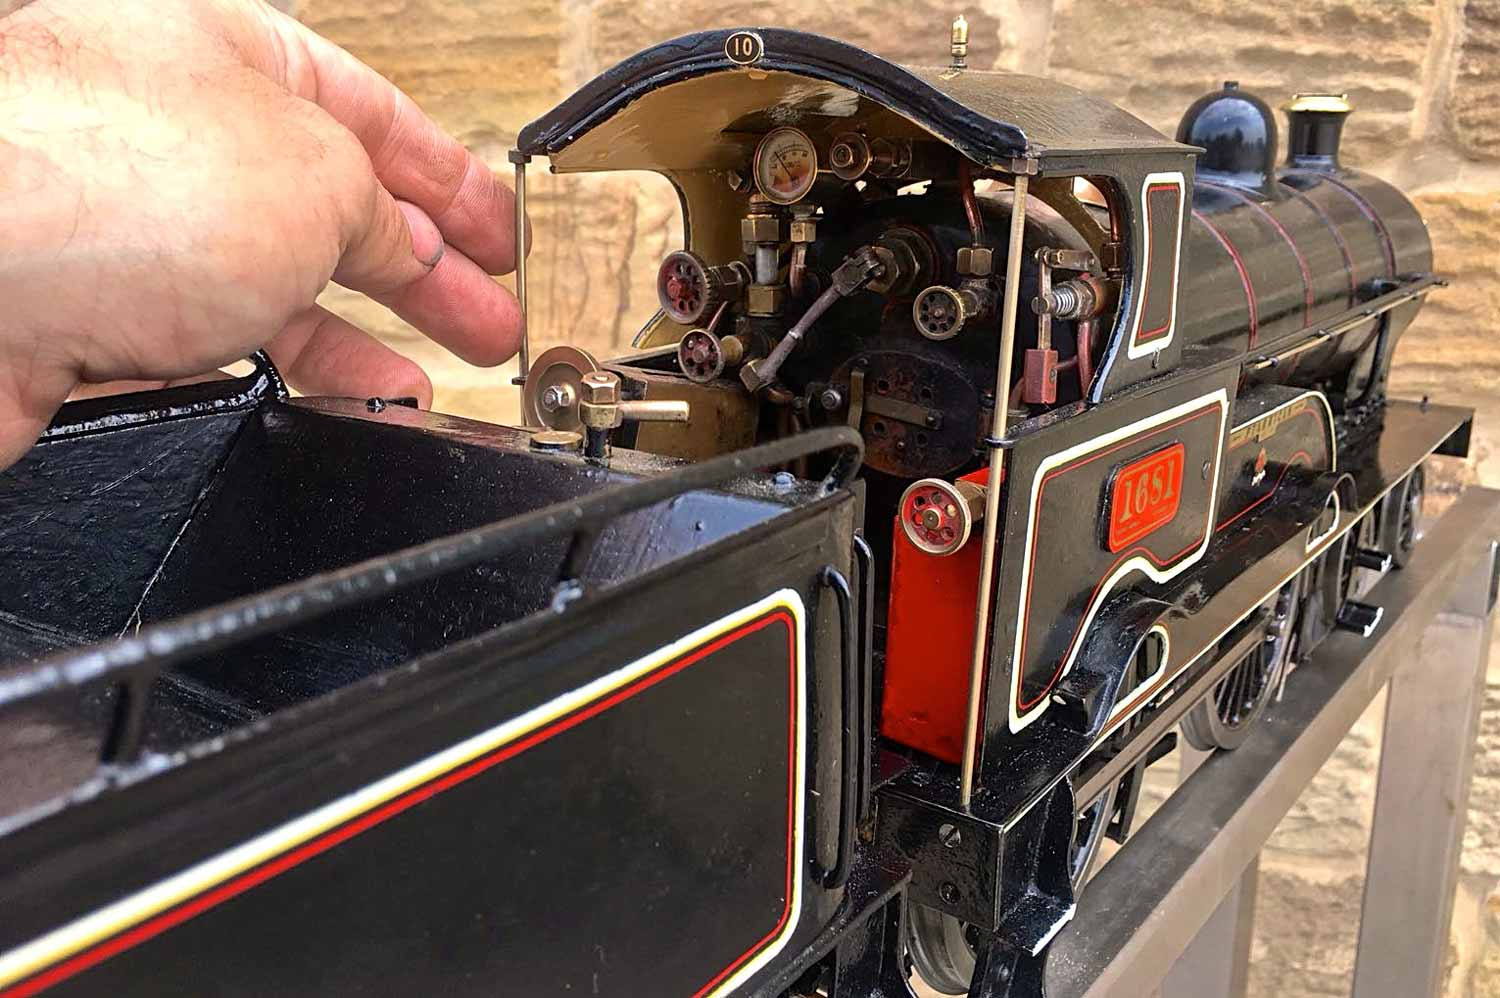 test 3-and-a-half-inch-LNWR-King-George-the-Fifth-live-steam-locomotive-for-sale-16